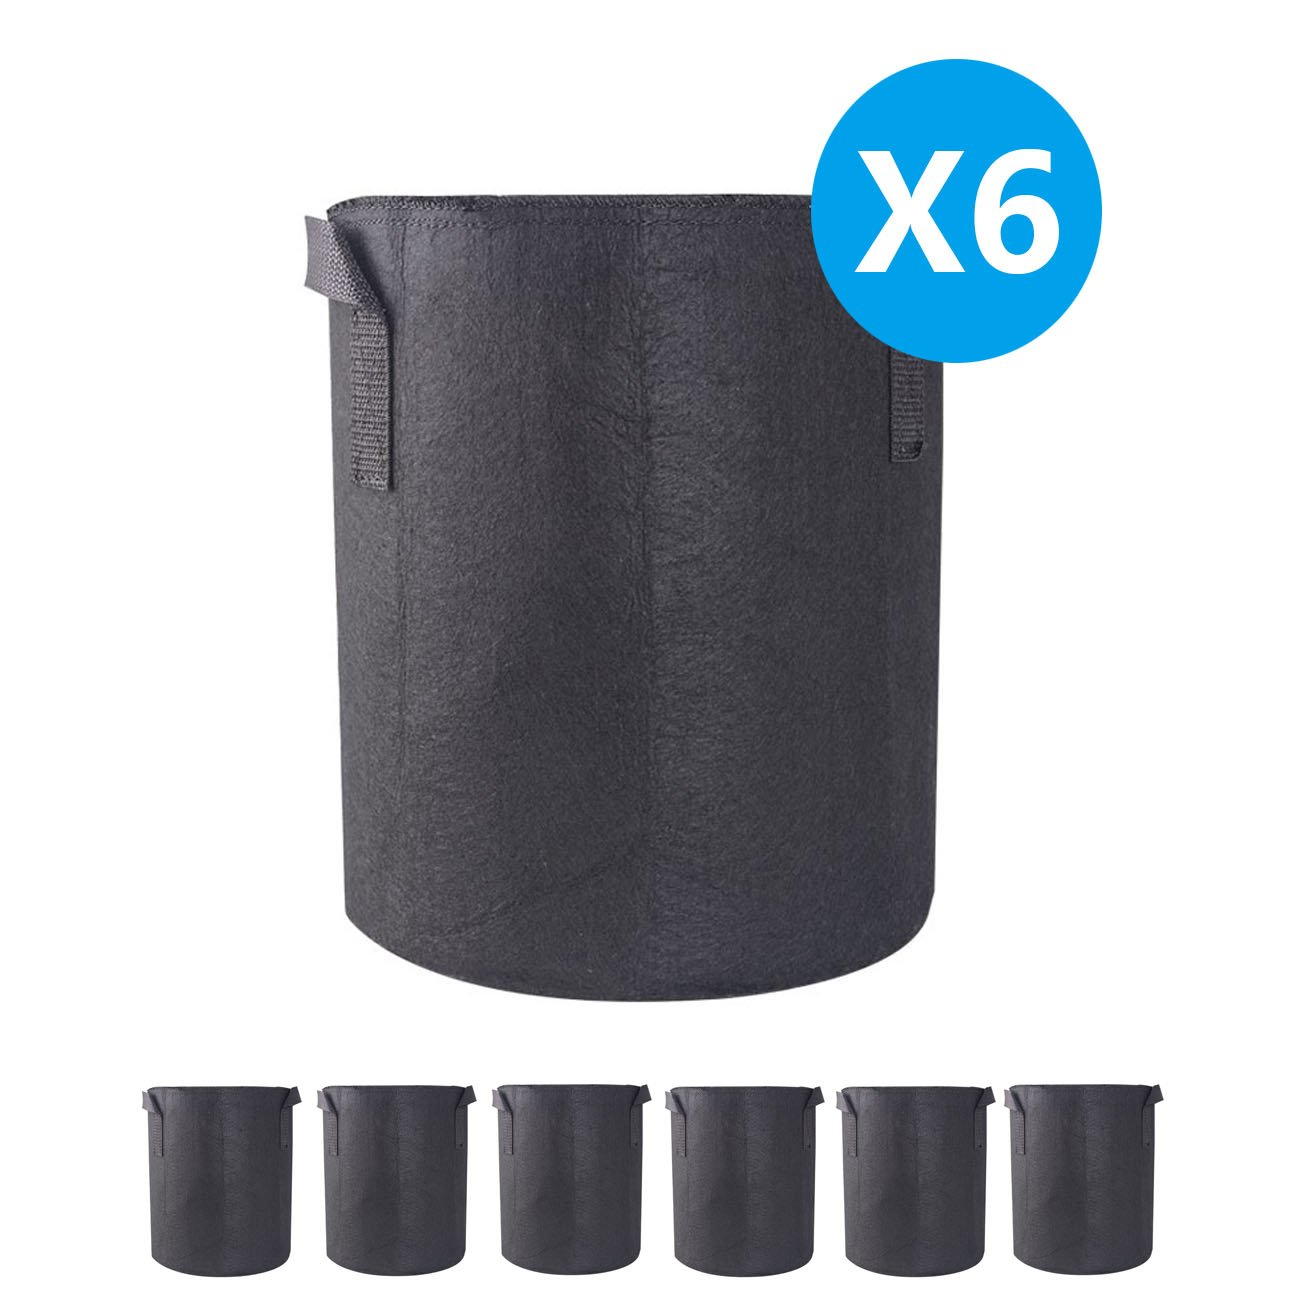 A1KINGDOM 6-Pack 7 Gallon Grow Bags/Aeration Fabric Smart Pots/Plant Container with Handles